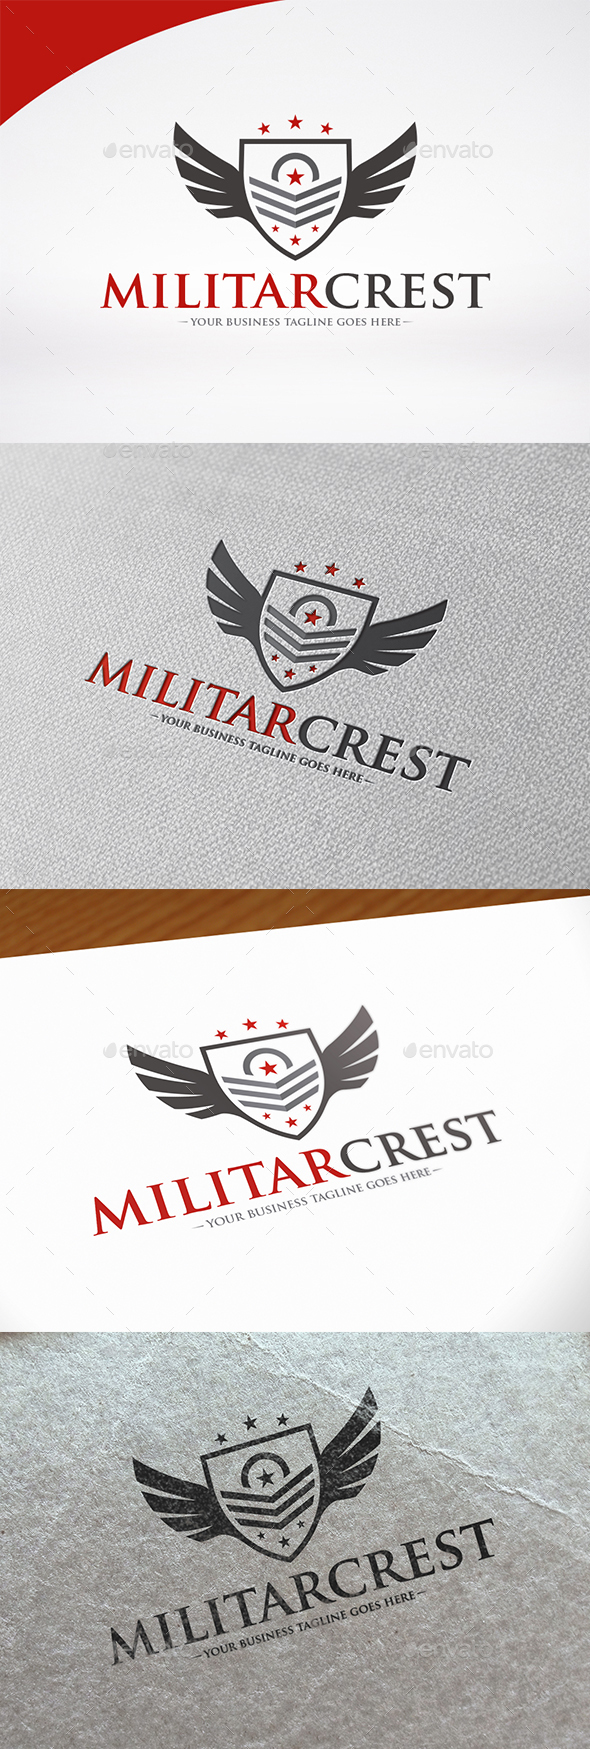 Military Crest Logo Template - Crests Logo Templates